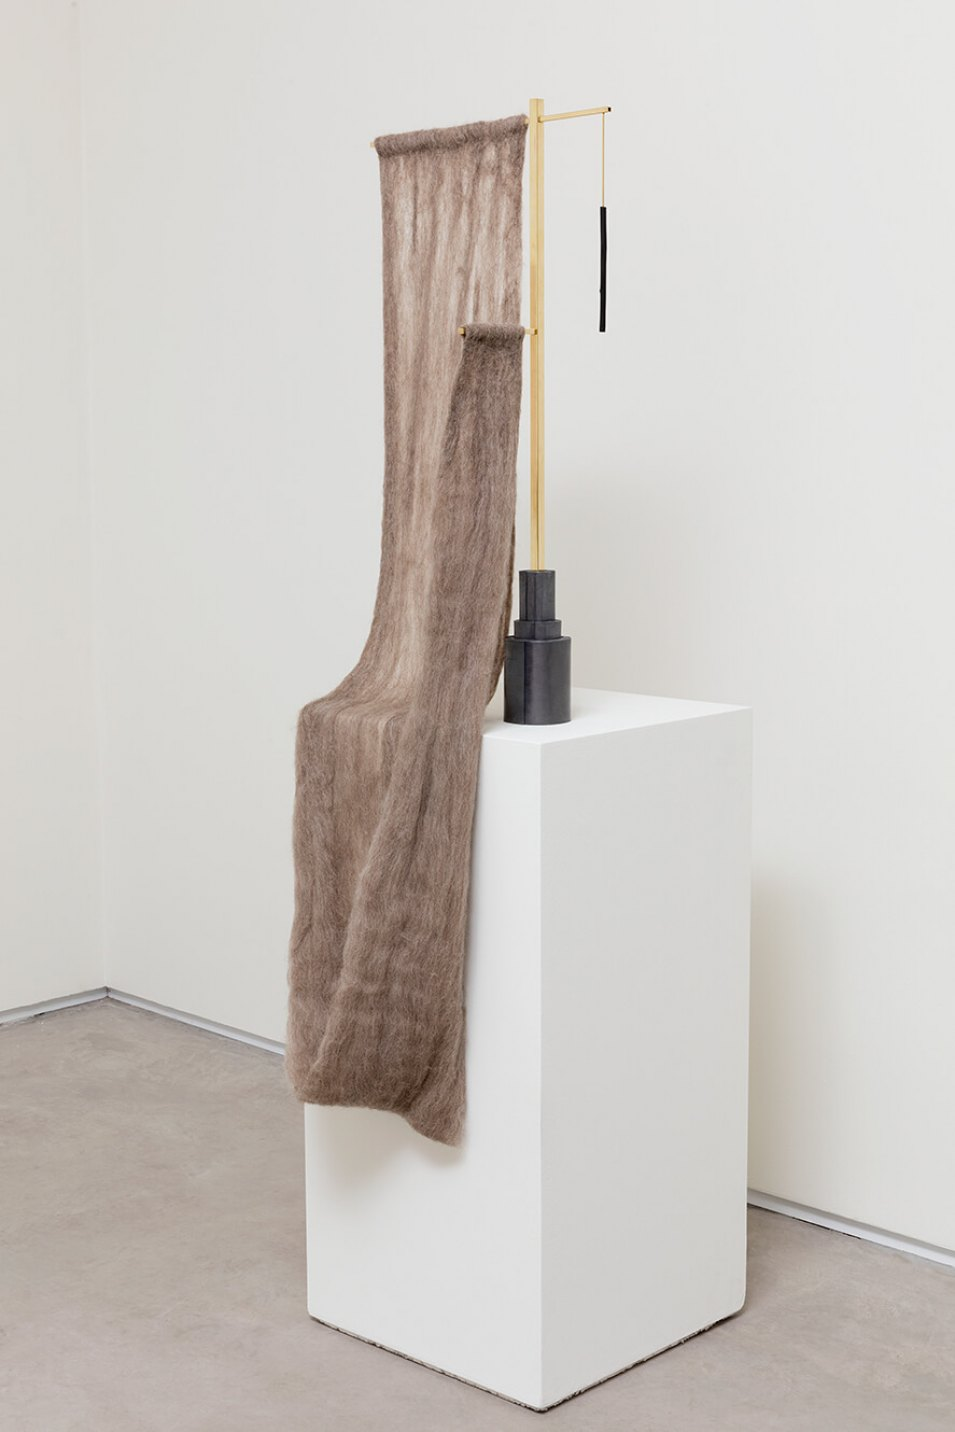 Paloma Bosquê,&nbsp;<em>Cross</em>, 2016, wool felted by hand, brass rods and charcoal, 120 × 14 × 38,5 cm - Mendes Wood DM